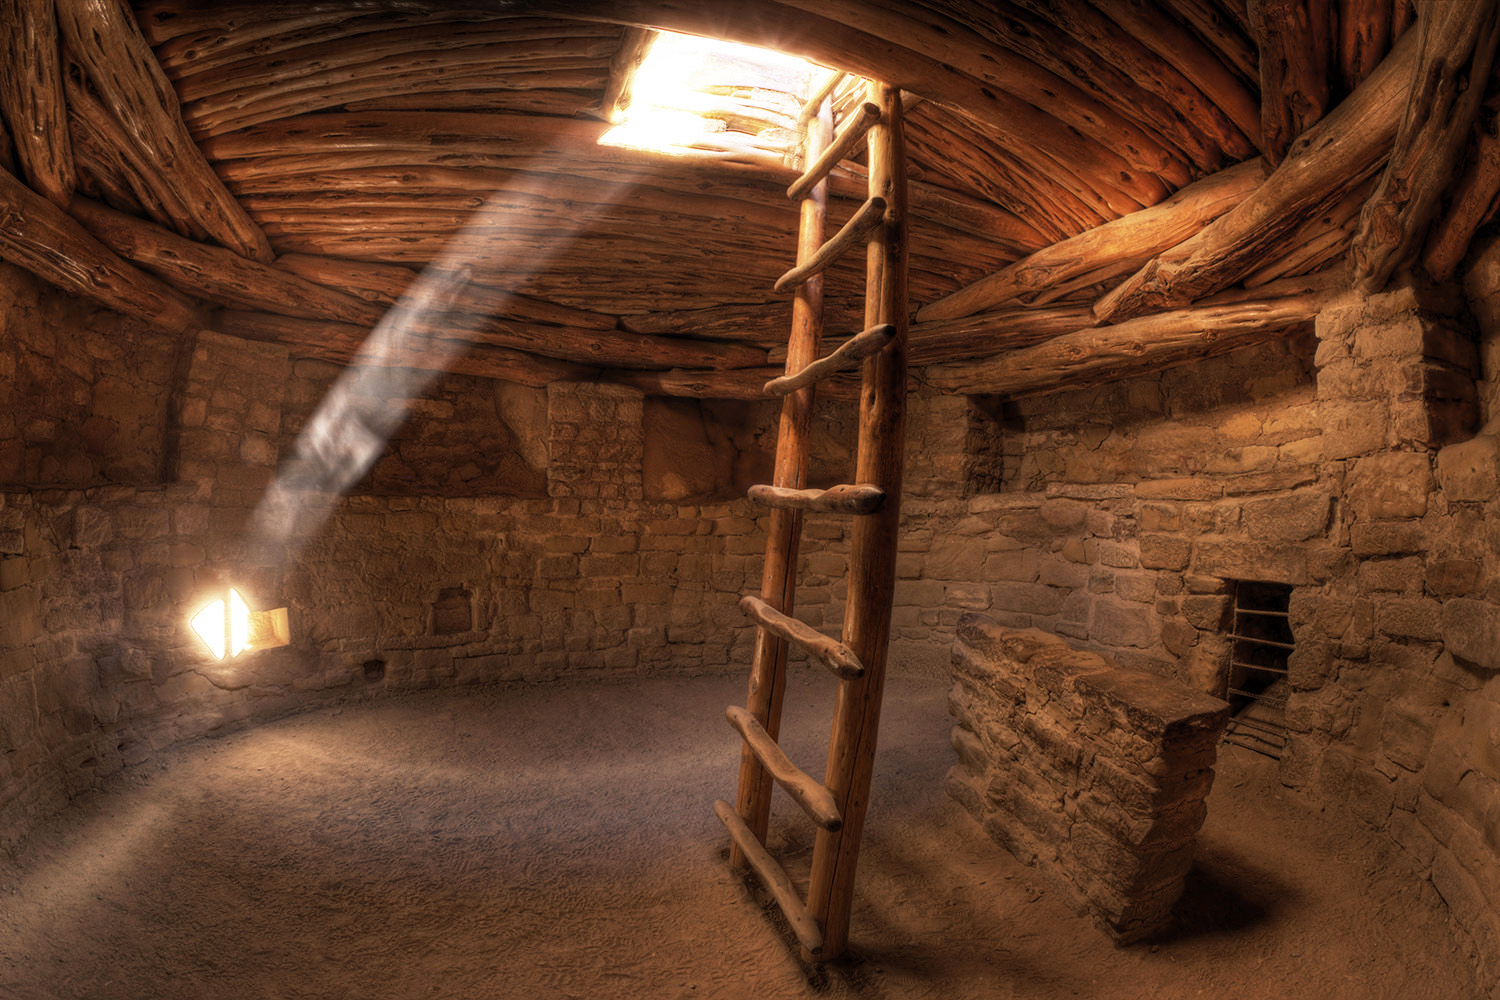 Riddles of the Anasazi